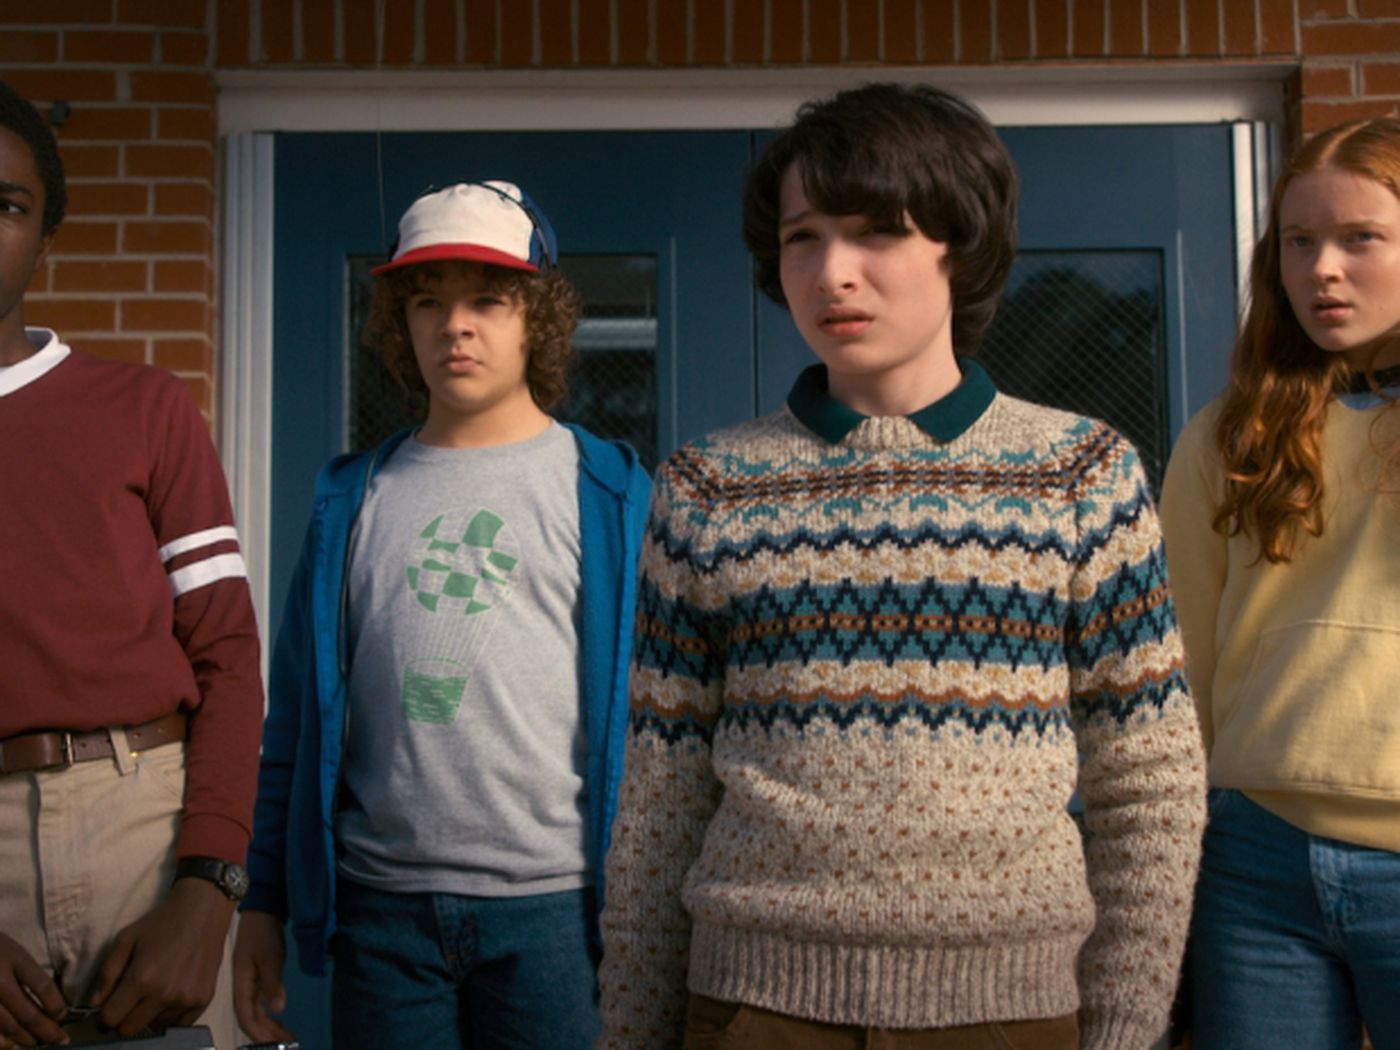 We're Hyped for 'Stranger Things 2' and the 'Phantom Thread